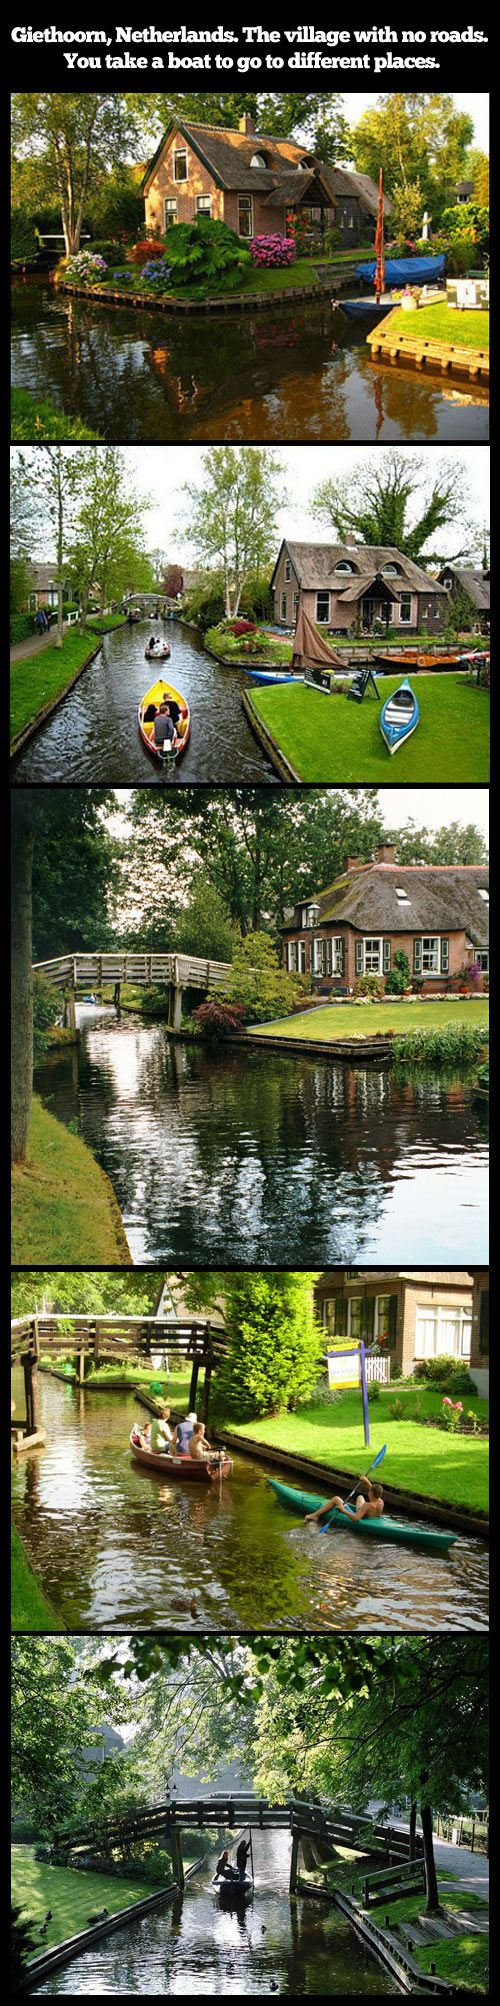 Netherlands- go here!!!!